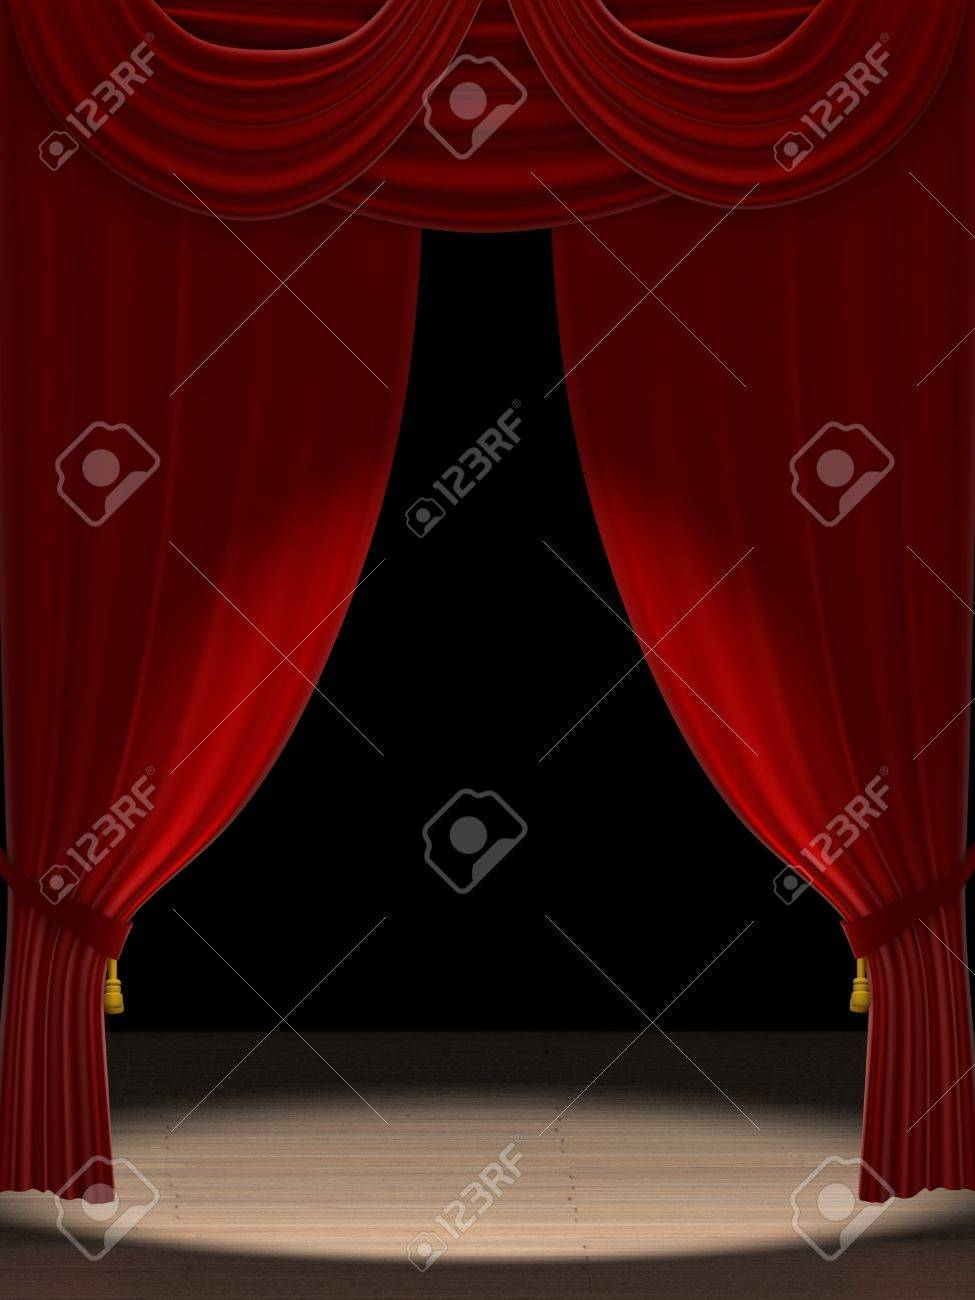 Stage curtains spotlight - Three Dimensional Render Of Red Velvet Theatre Curtains With A Spotlight On Stage Stock Photo